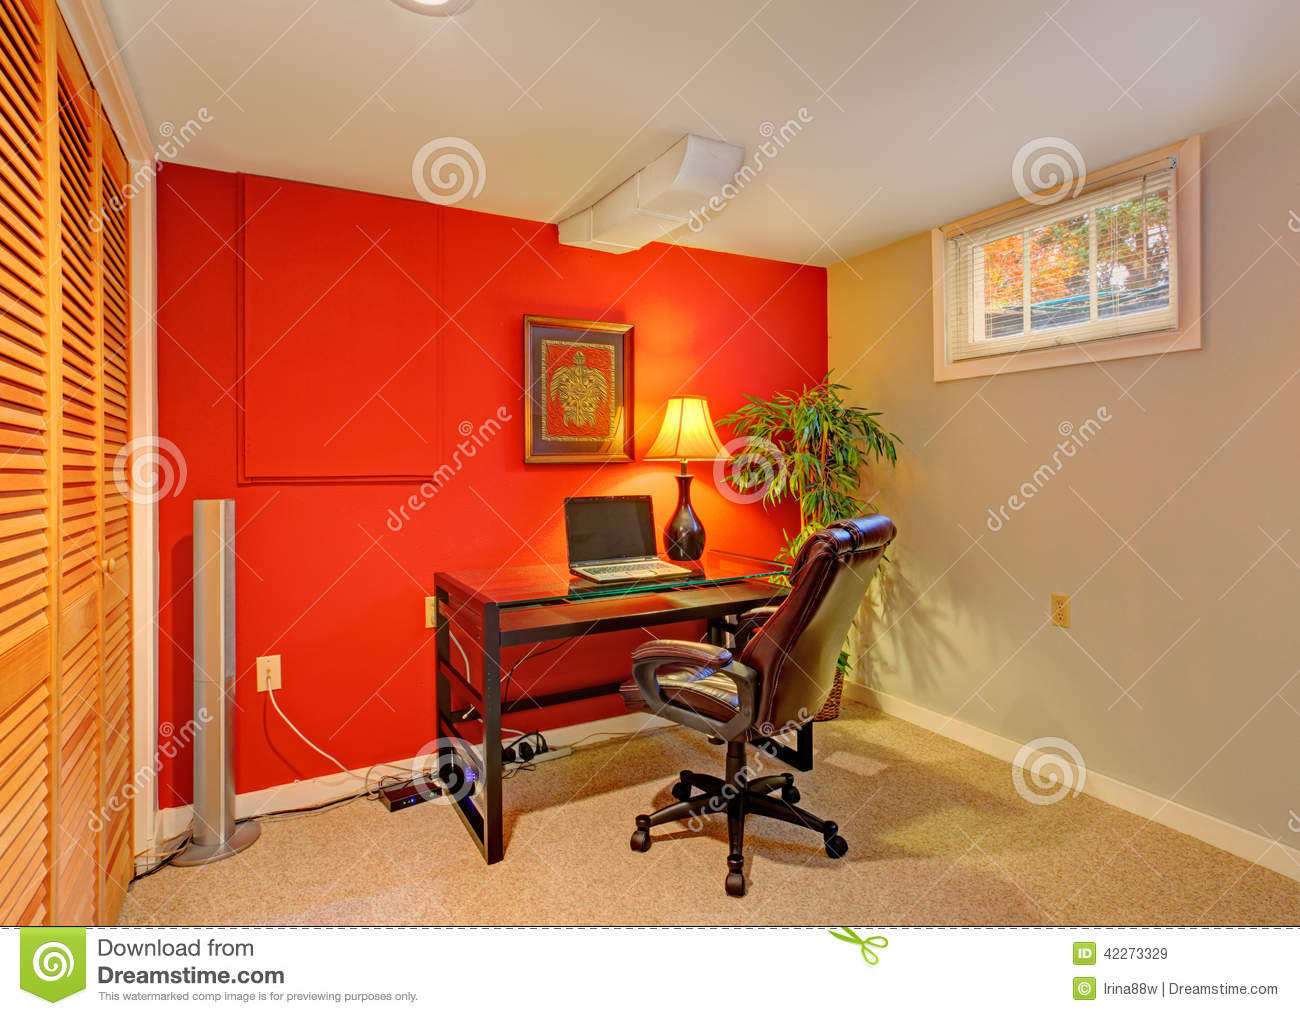 colors for office. Office Room In Contrast Bright Colors Stock Image - Of Laptop, Indoors: 42273329 For P